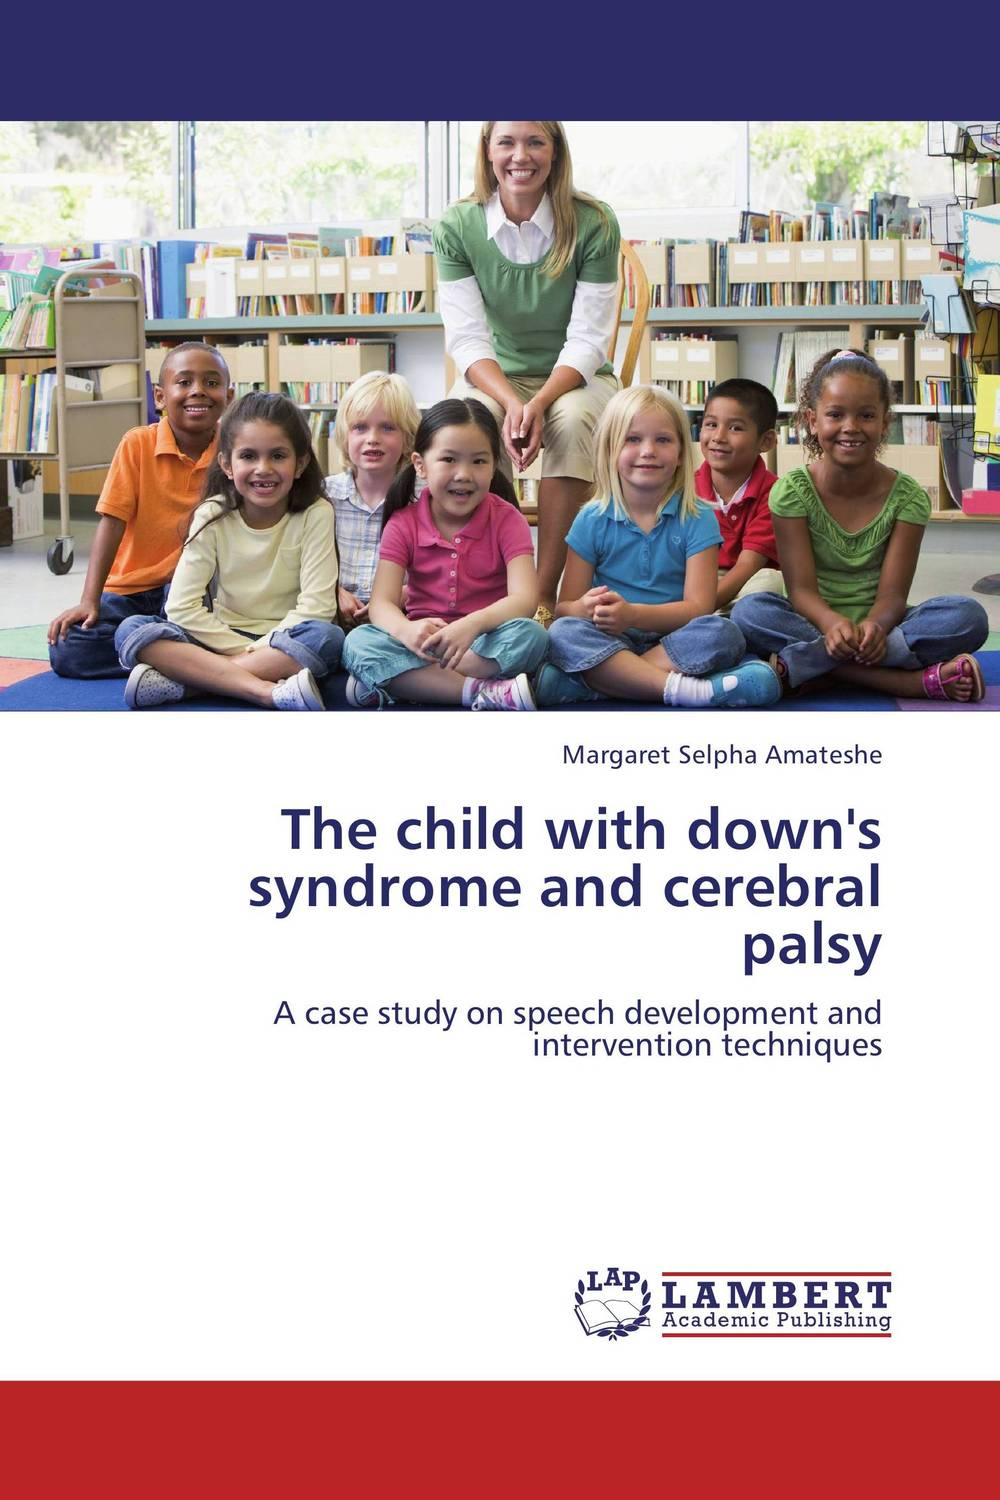 The child with down's syndrome and cerebral palsy hormonal key players for obesity in children with down syndrome